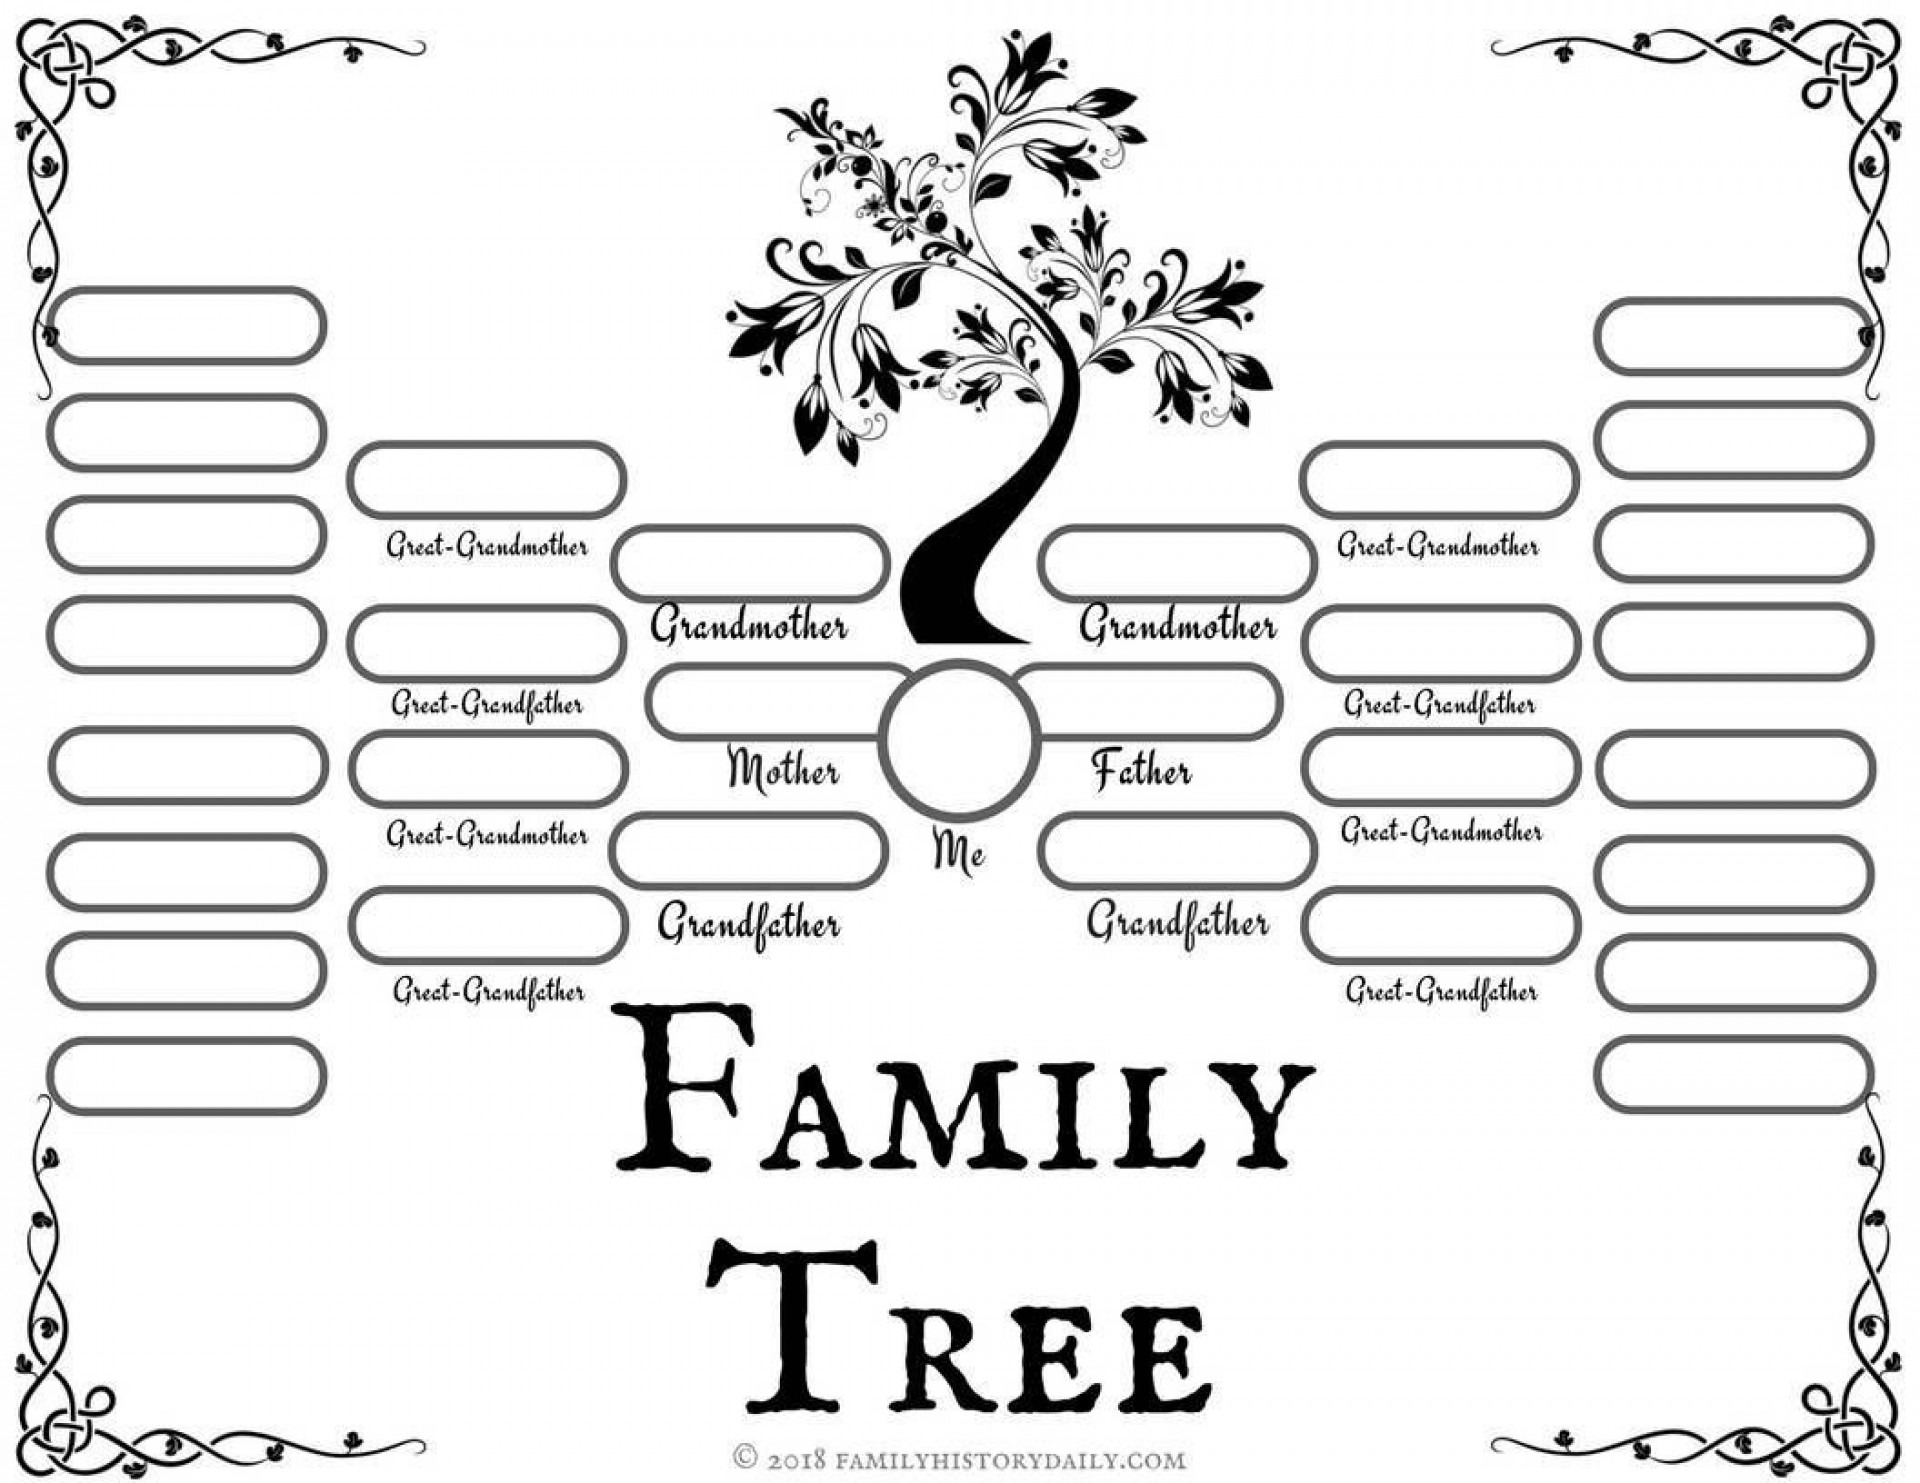 002 Exceptional Free Editable Family Tree Template With Sibling Image  Siblings1920